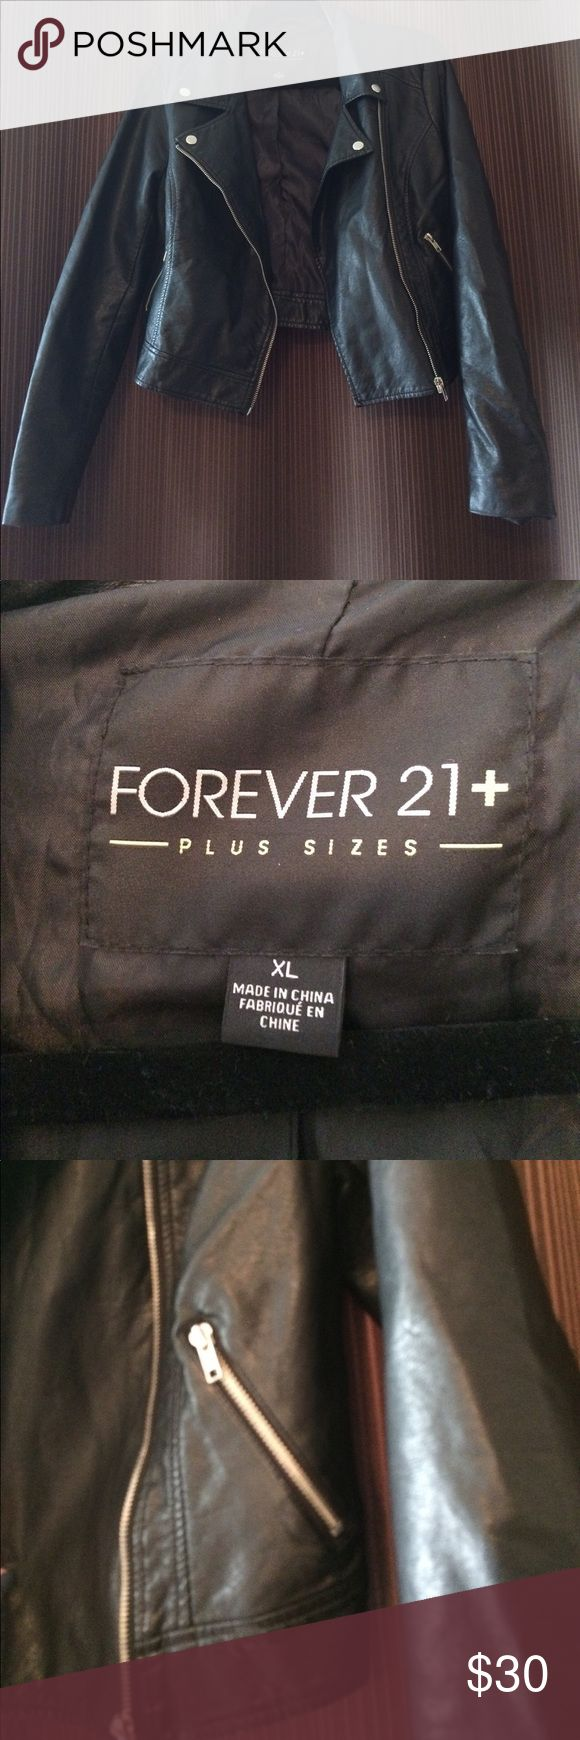 Forever 21 - Plus Size XL Faux Leather Jacket Forever 21 - Plus Size XL Faux Leather Jacket. This jacket has been worn before, but has no major flaws. It is super cute and can be worn in a very of settings! Smoke free clean home. Forever 21 Jackets & Coats Utility Jackets